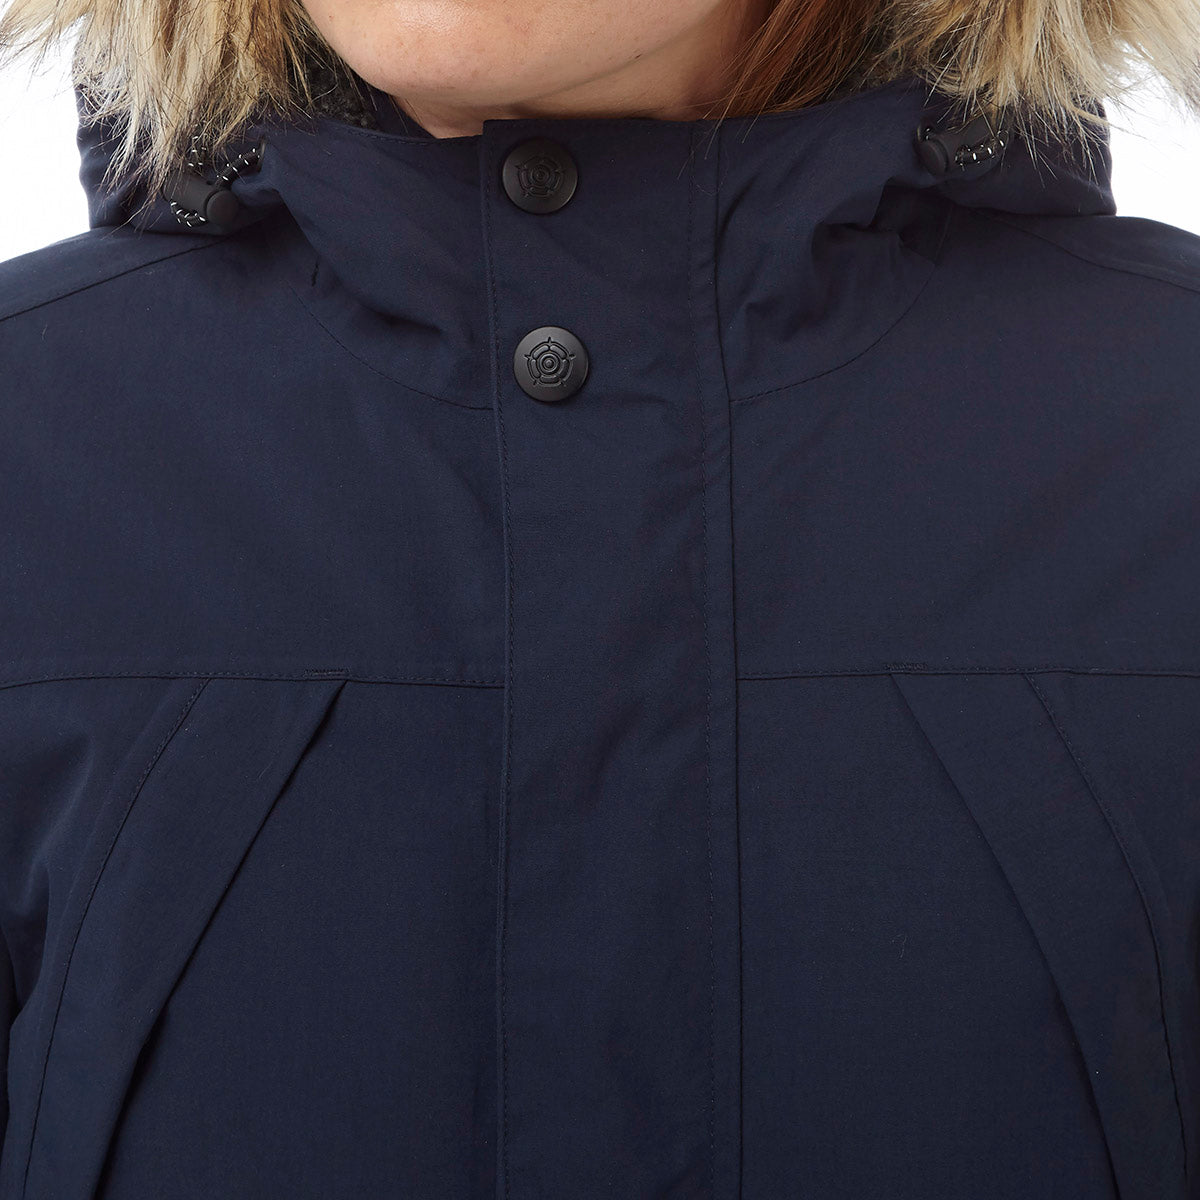 Superior Womens Milatex Jacket - Navy image 4